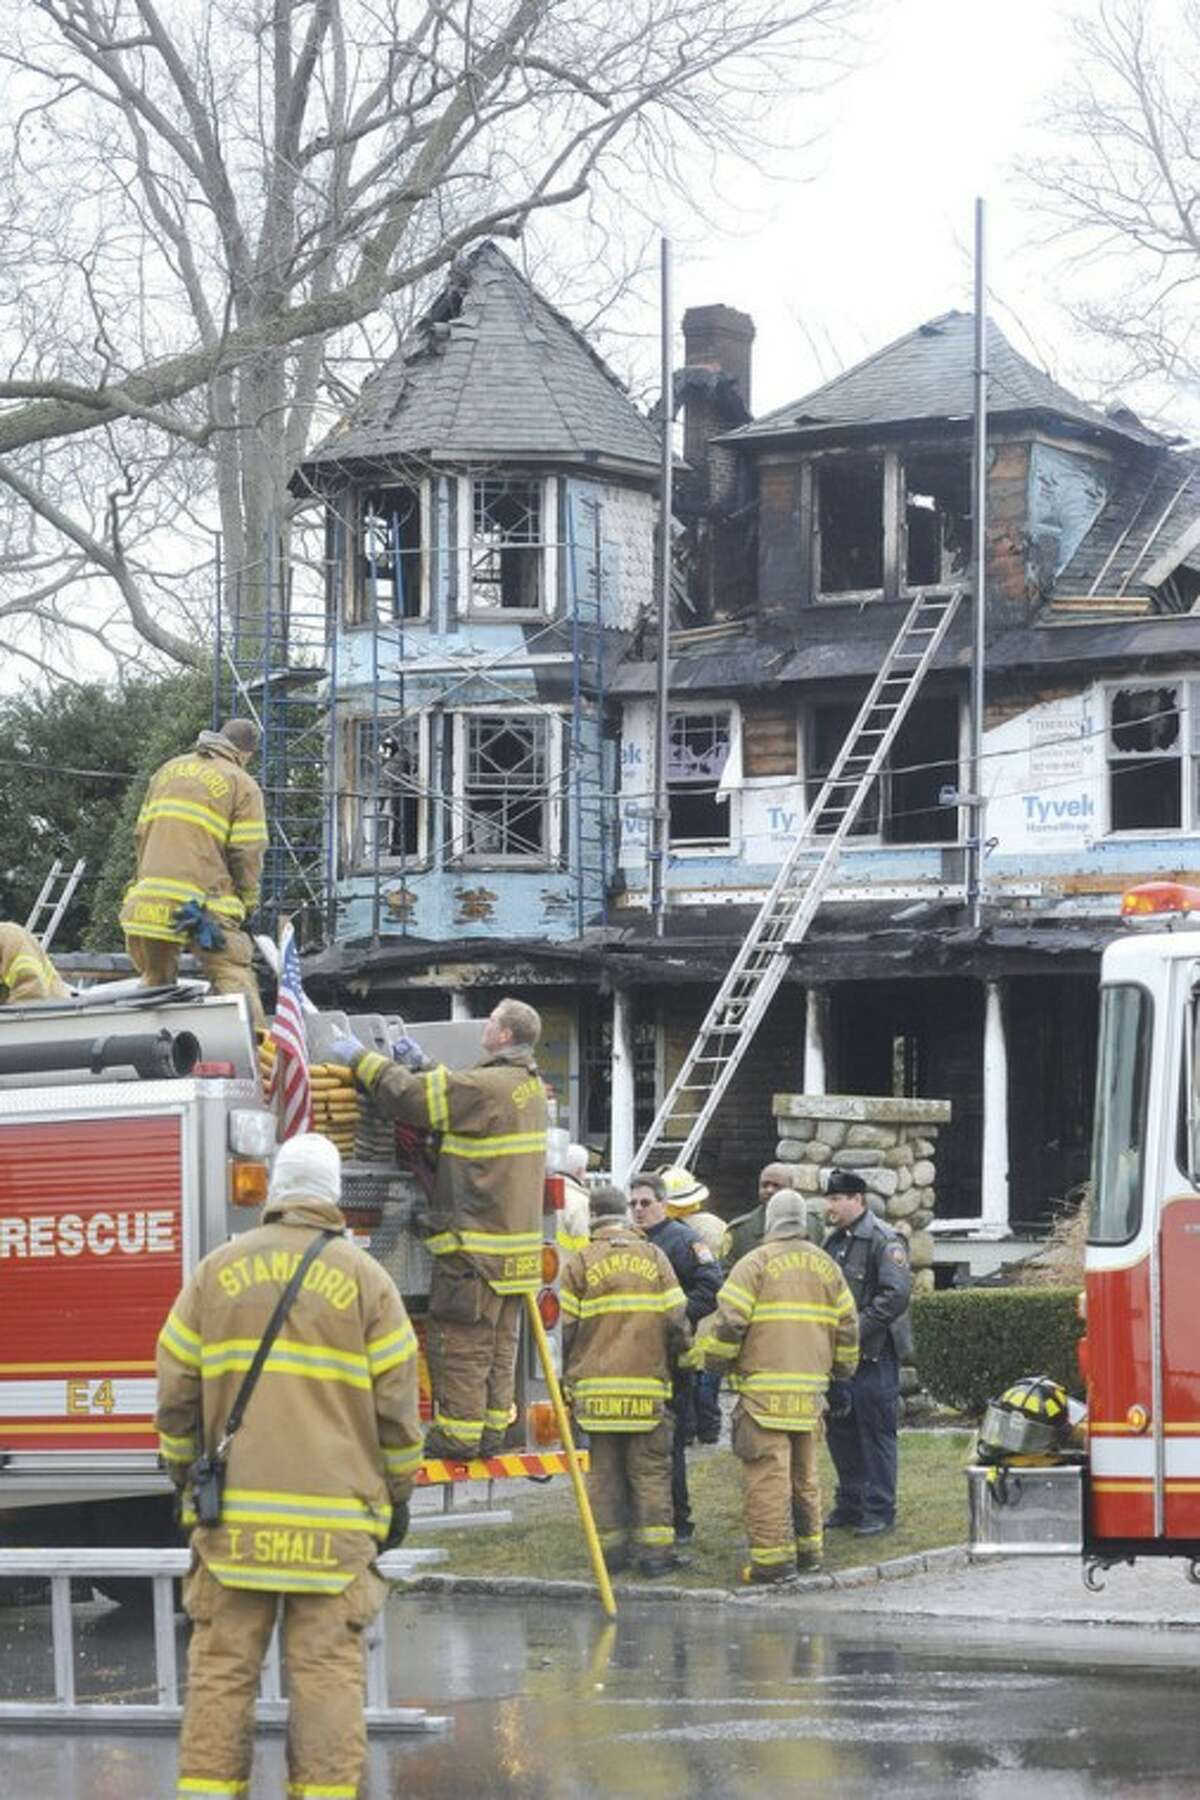 File Photo / Matthew Vinci. Stamford Fire & Rescue teams work outside of a home at 2267 Shippan Ave. in Stamford after a fire broke out Christmas Day 2011, killing five occupants.